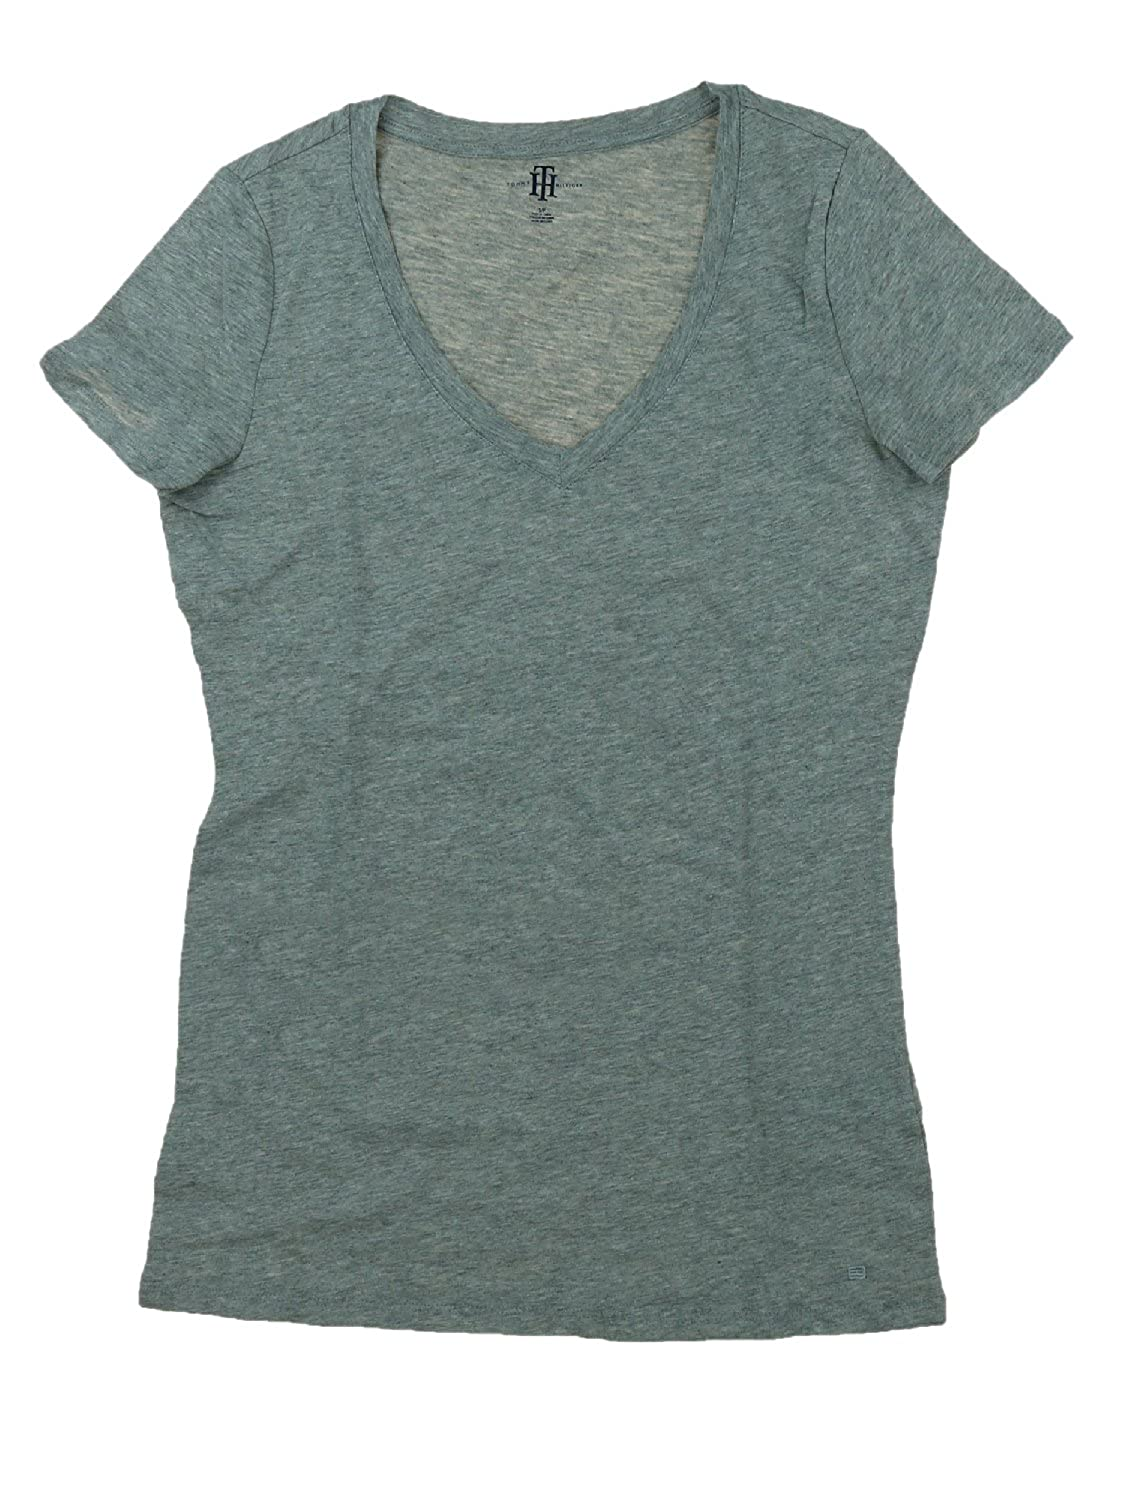 bd16ee04 Amazon.com: Tommy Hilfiger Womens Short Sleeve V-Neck Tee: Clothing